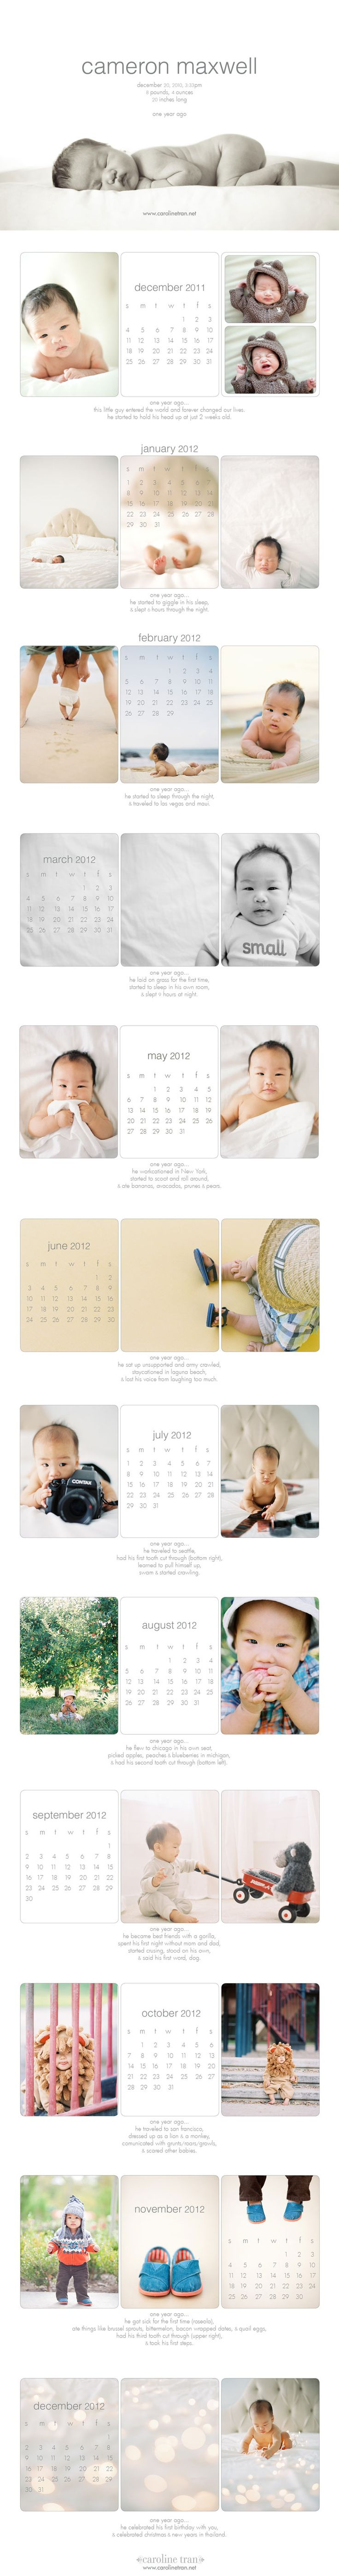 """One Year Ago"" calenders chronicling his first year. These were printed as individual months and packaged in a clear case as favors from his first birthday party."